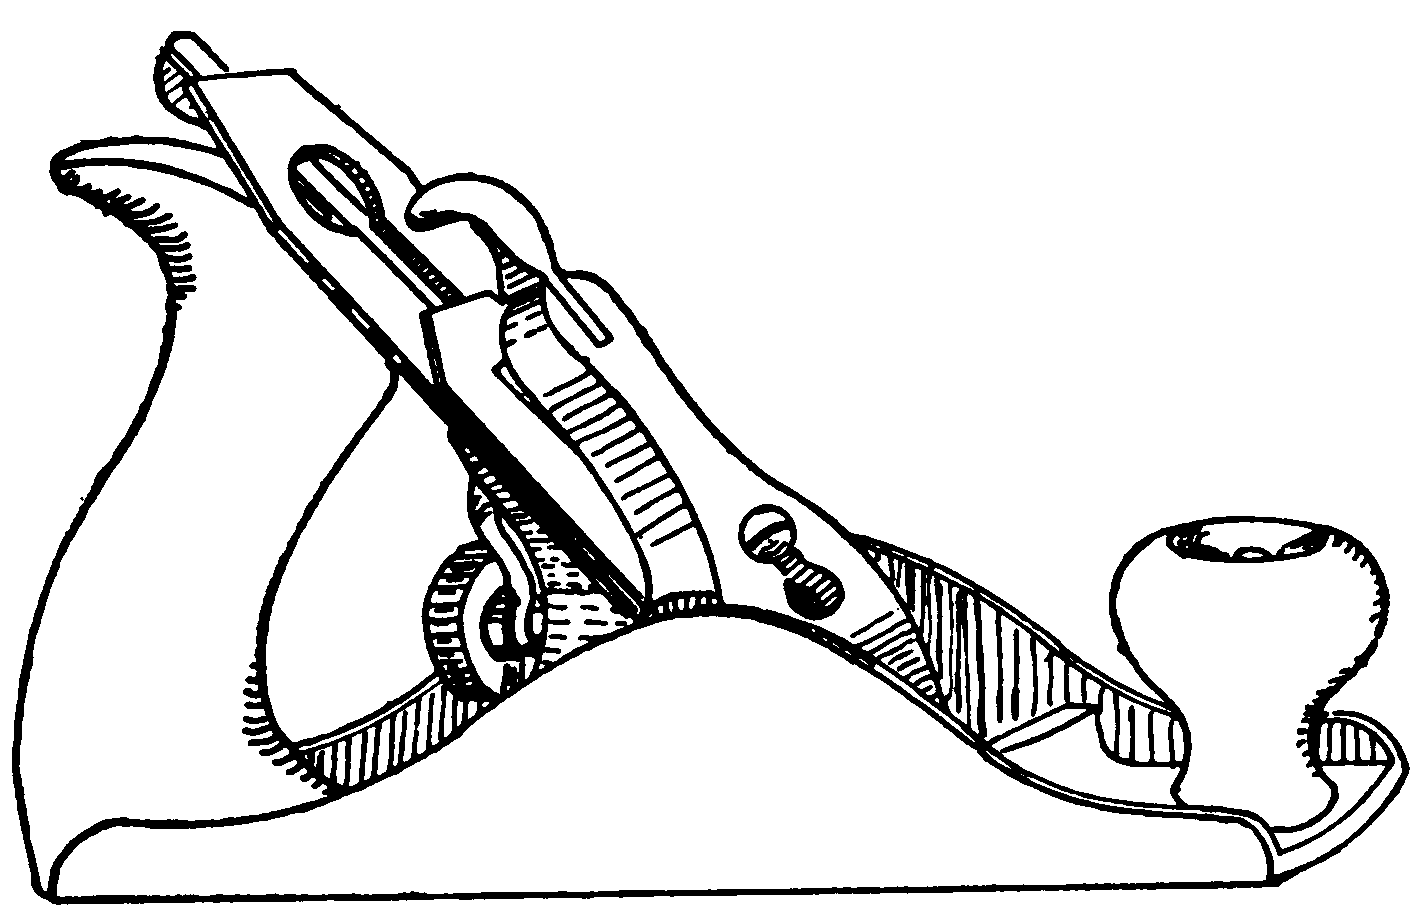 graphic free library Hand tools drawing at. Carpentry clipart blacksmith tool